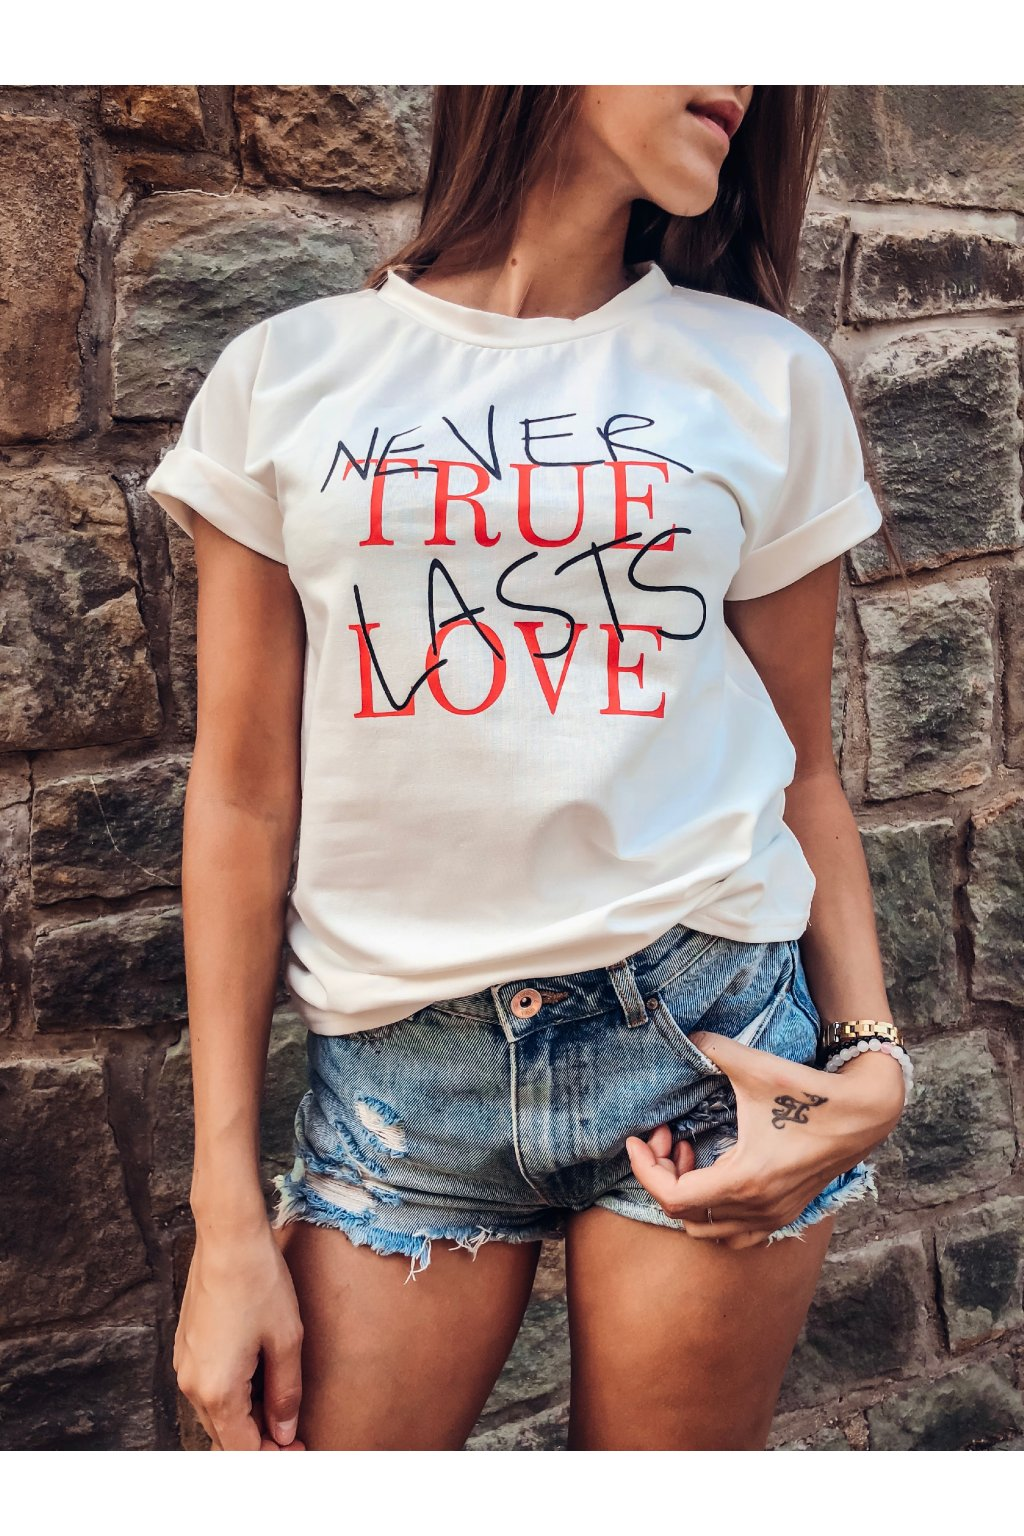 damske tricko never true lasts love white eshopat cz 6